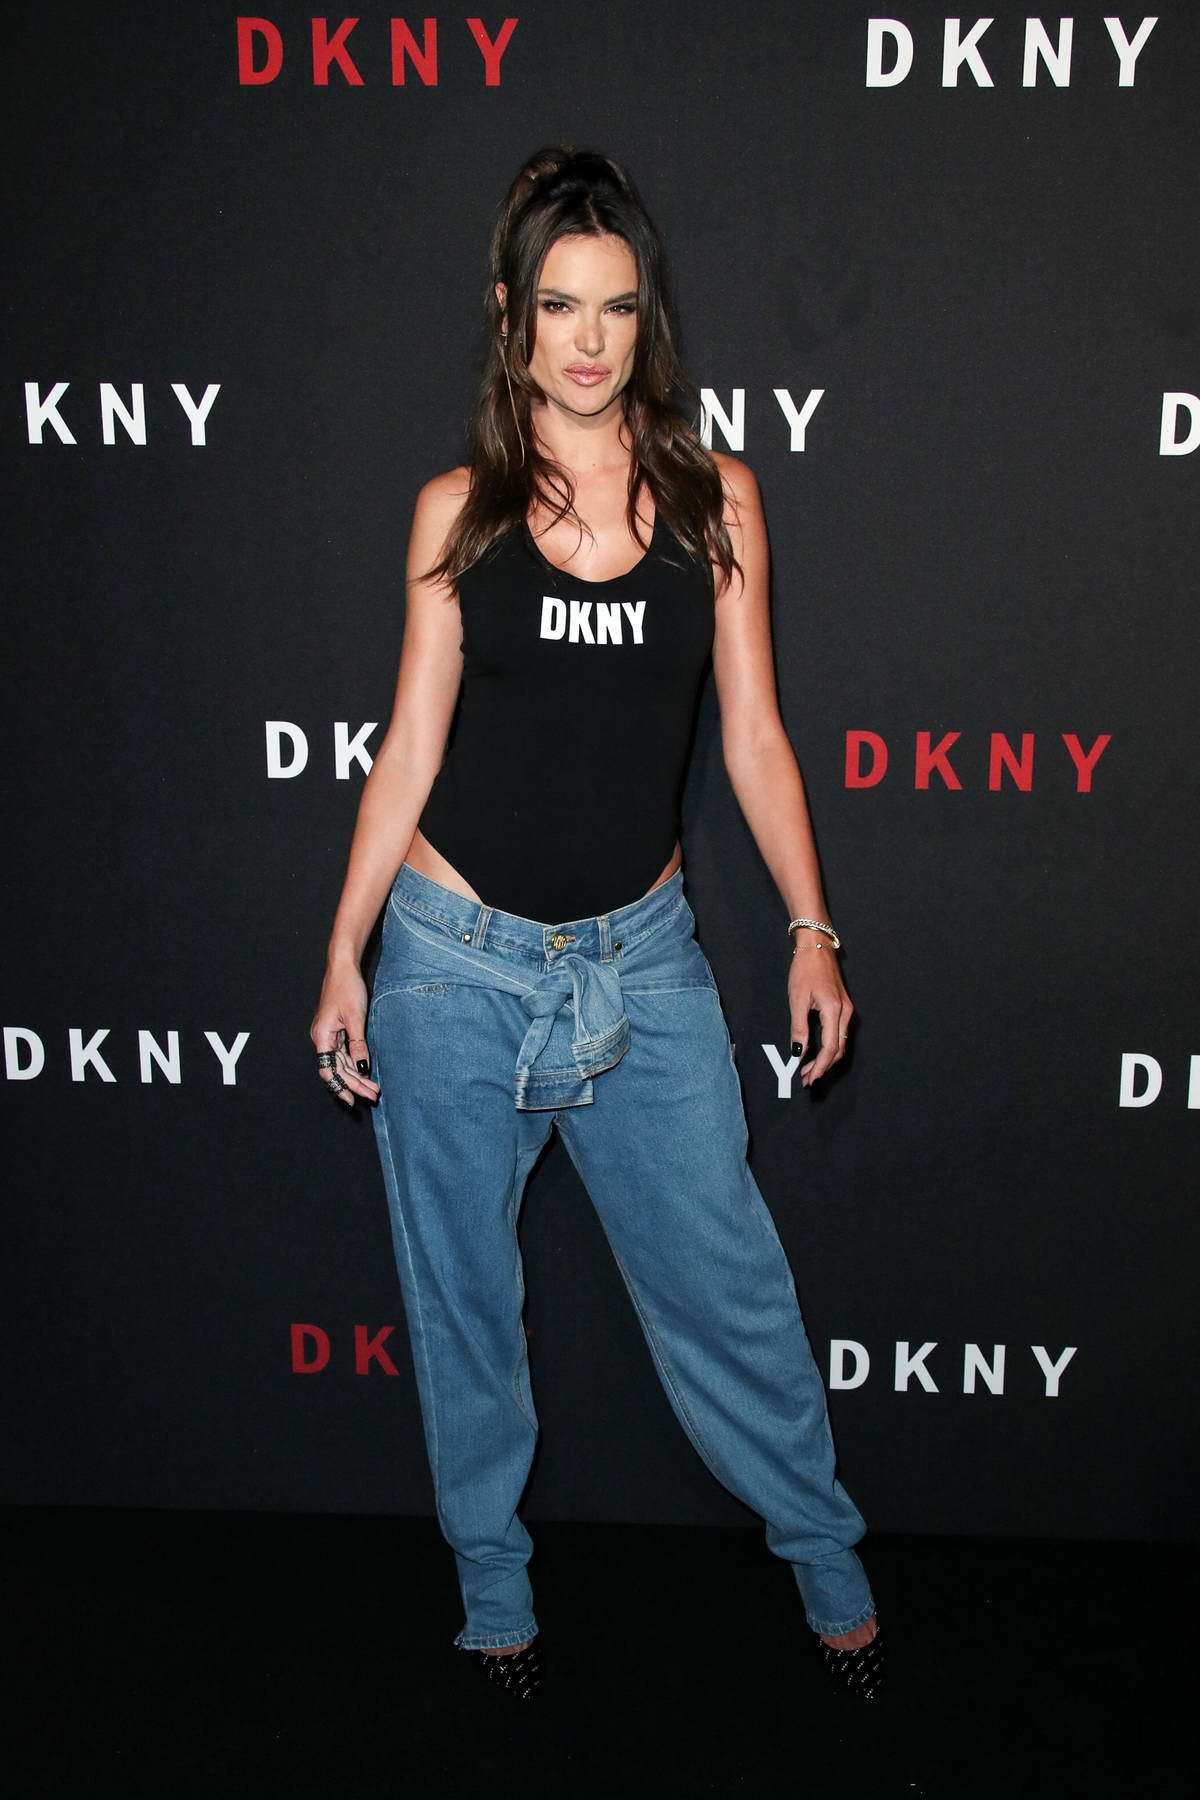 Alessandra Ambrosio attends DKNY 30th birthday party during New York Fashion Week in New York City